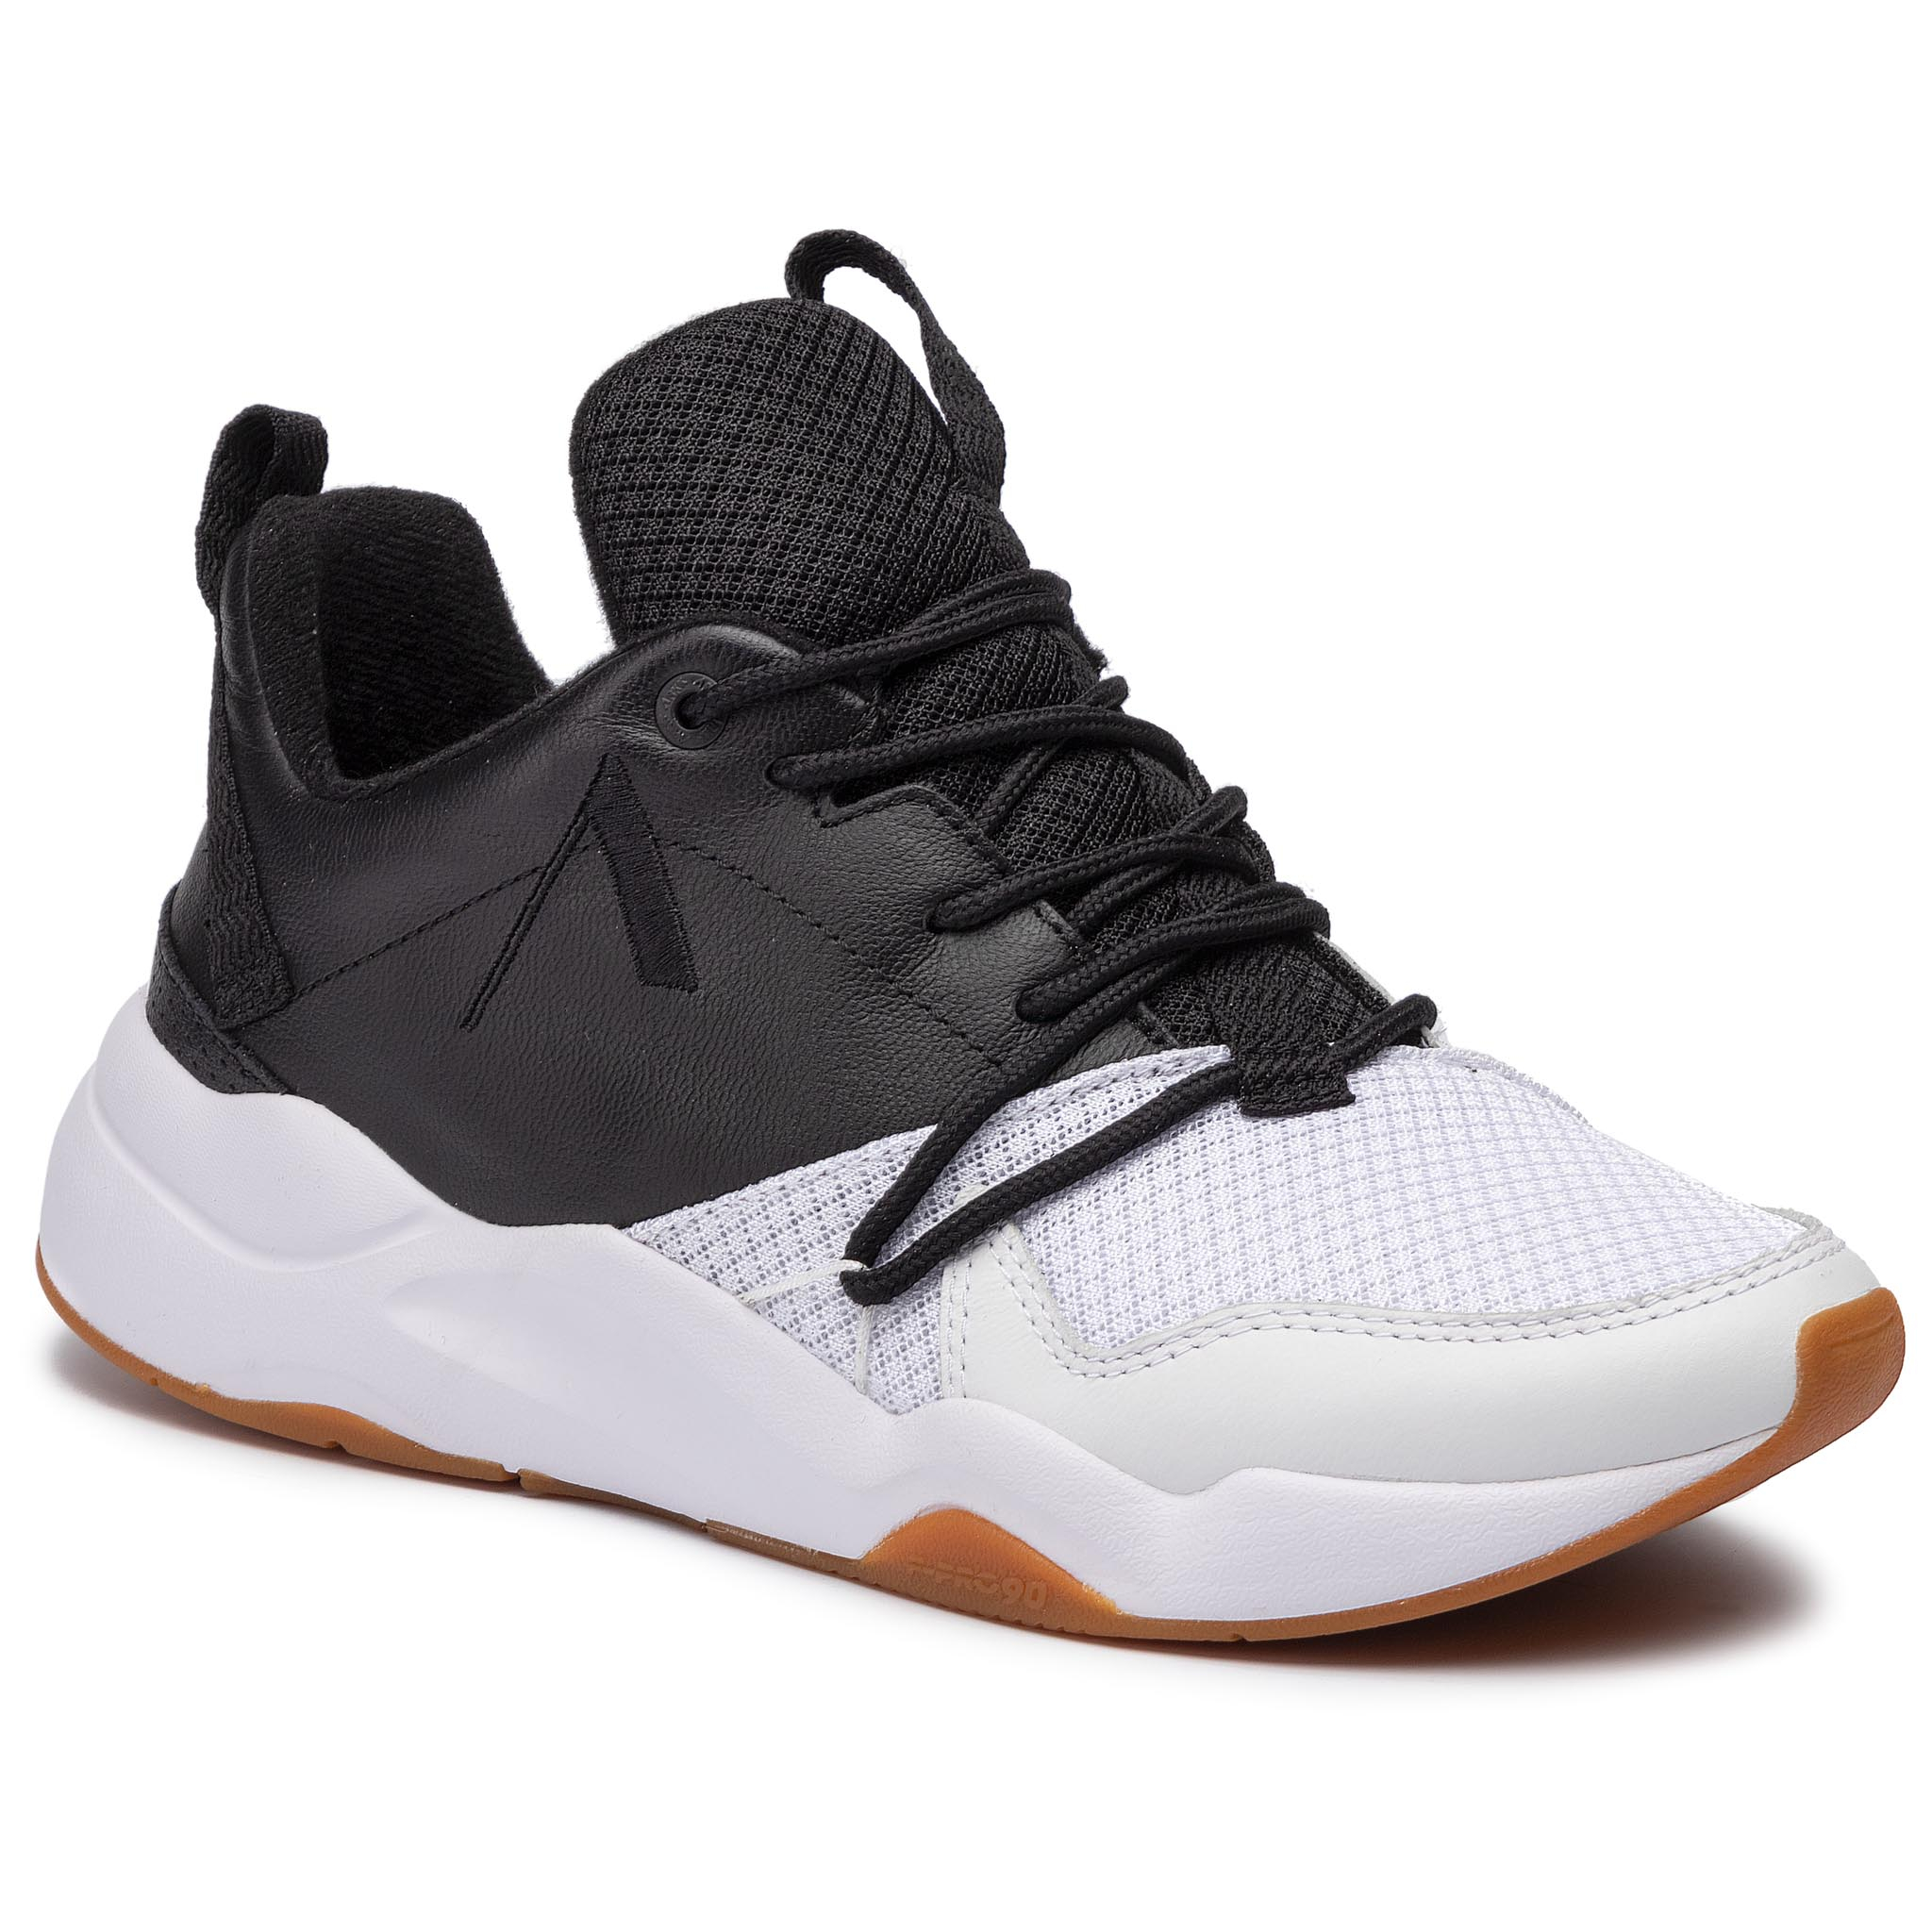 Image of Sneakers ARKK COPENHAGEN - Asymtrix Mesh F-PRO90 ML3012-9910-M Black/White Gum